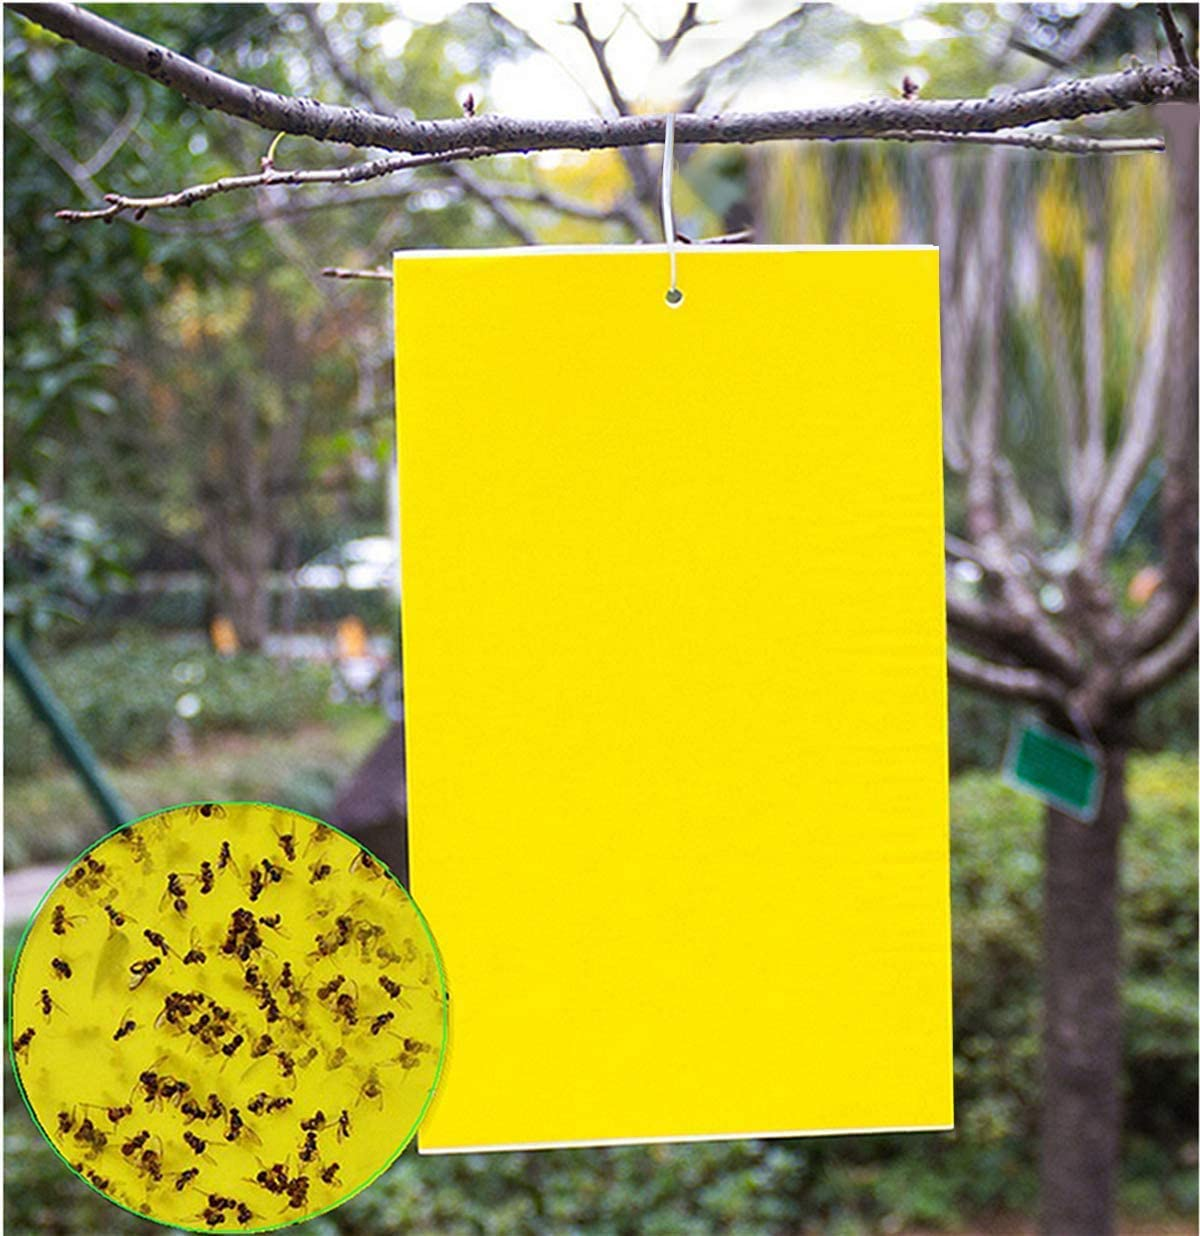 20 Count Dual Yellow Sticky Traps 8 X 6 Inch Set for Flying Plant Insect Like Fungus Gnats, Aphids, Whiteflies, Leafminers -Included 20pcs Twist Ties